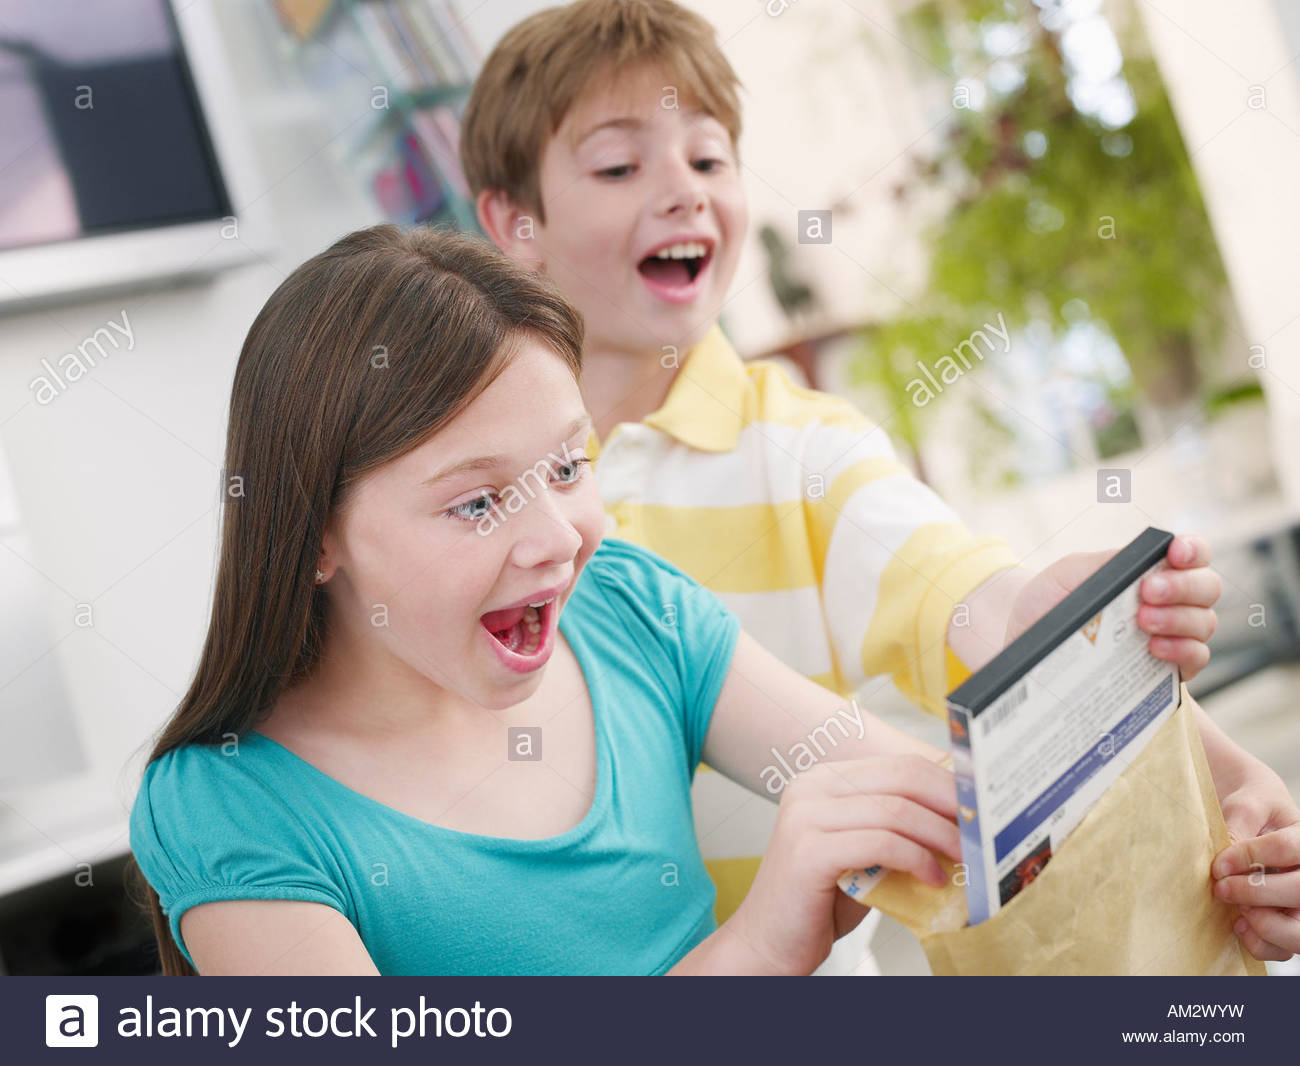 Girl opening package while young boy watches - Stock Image